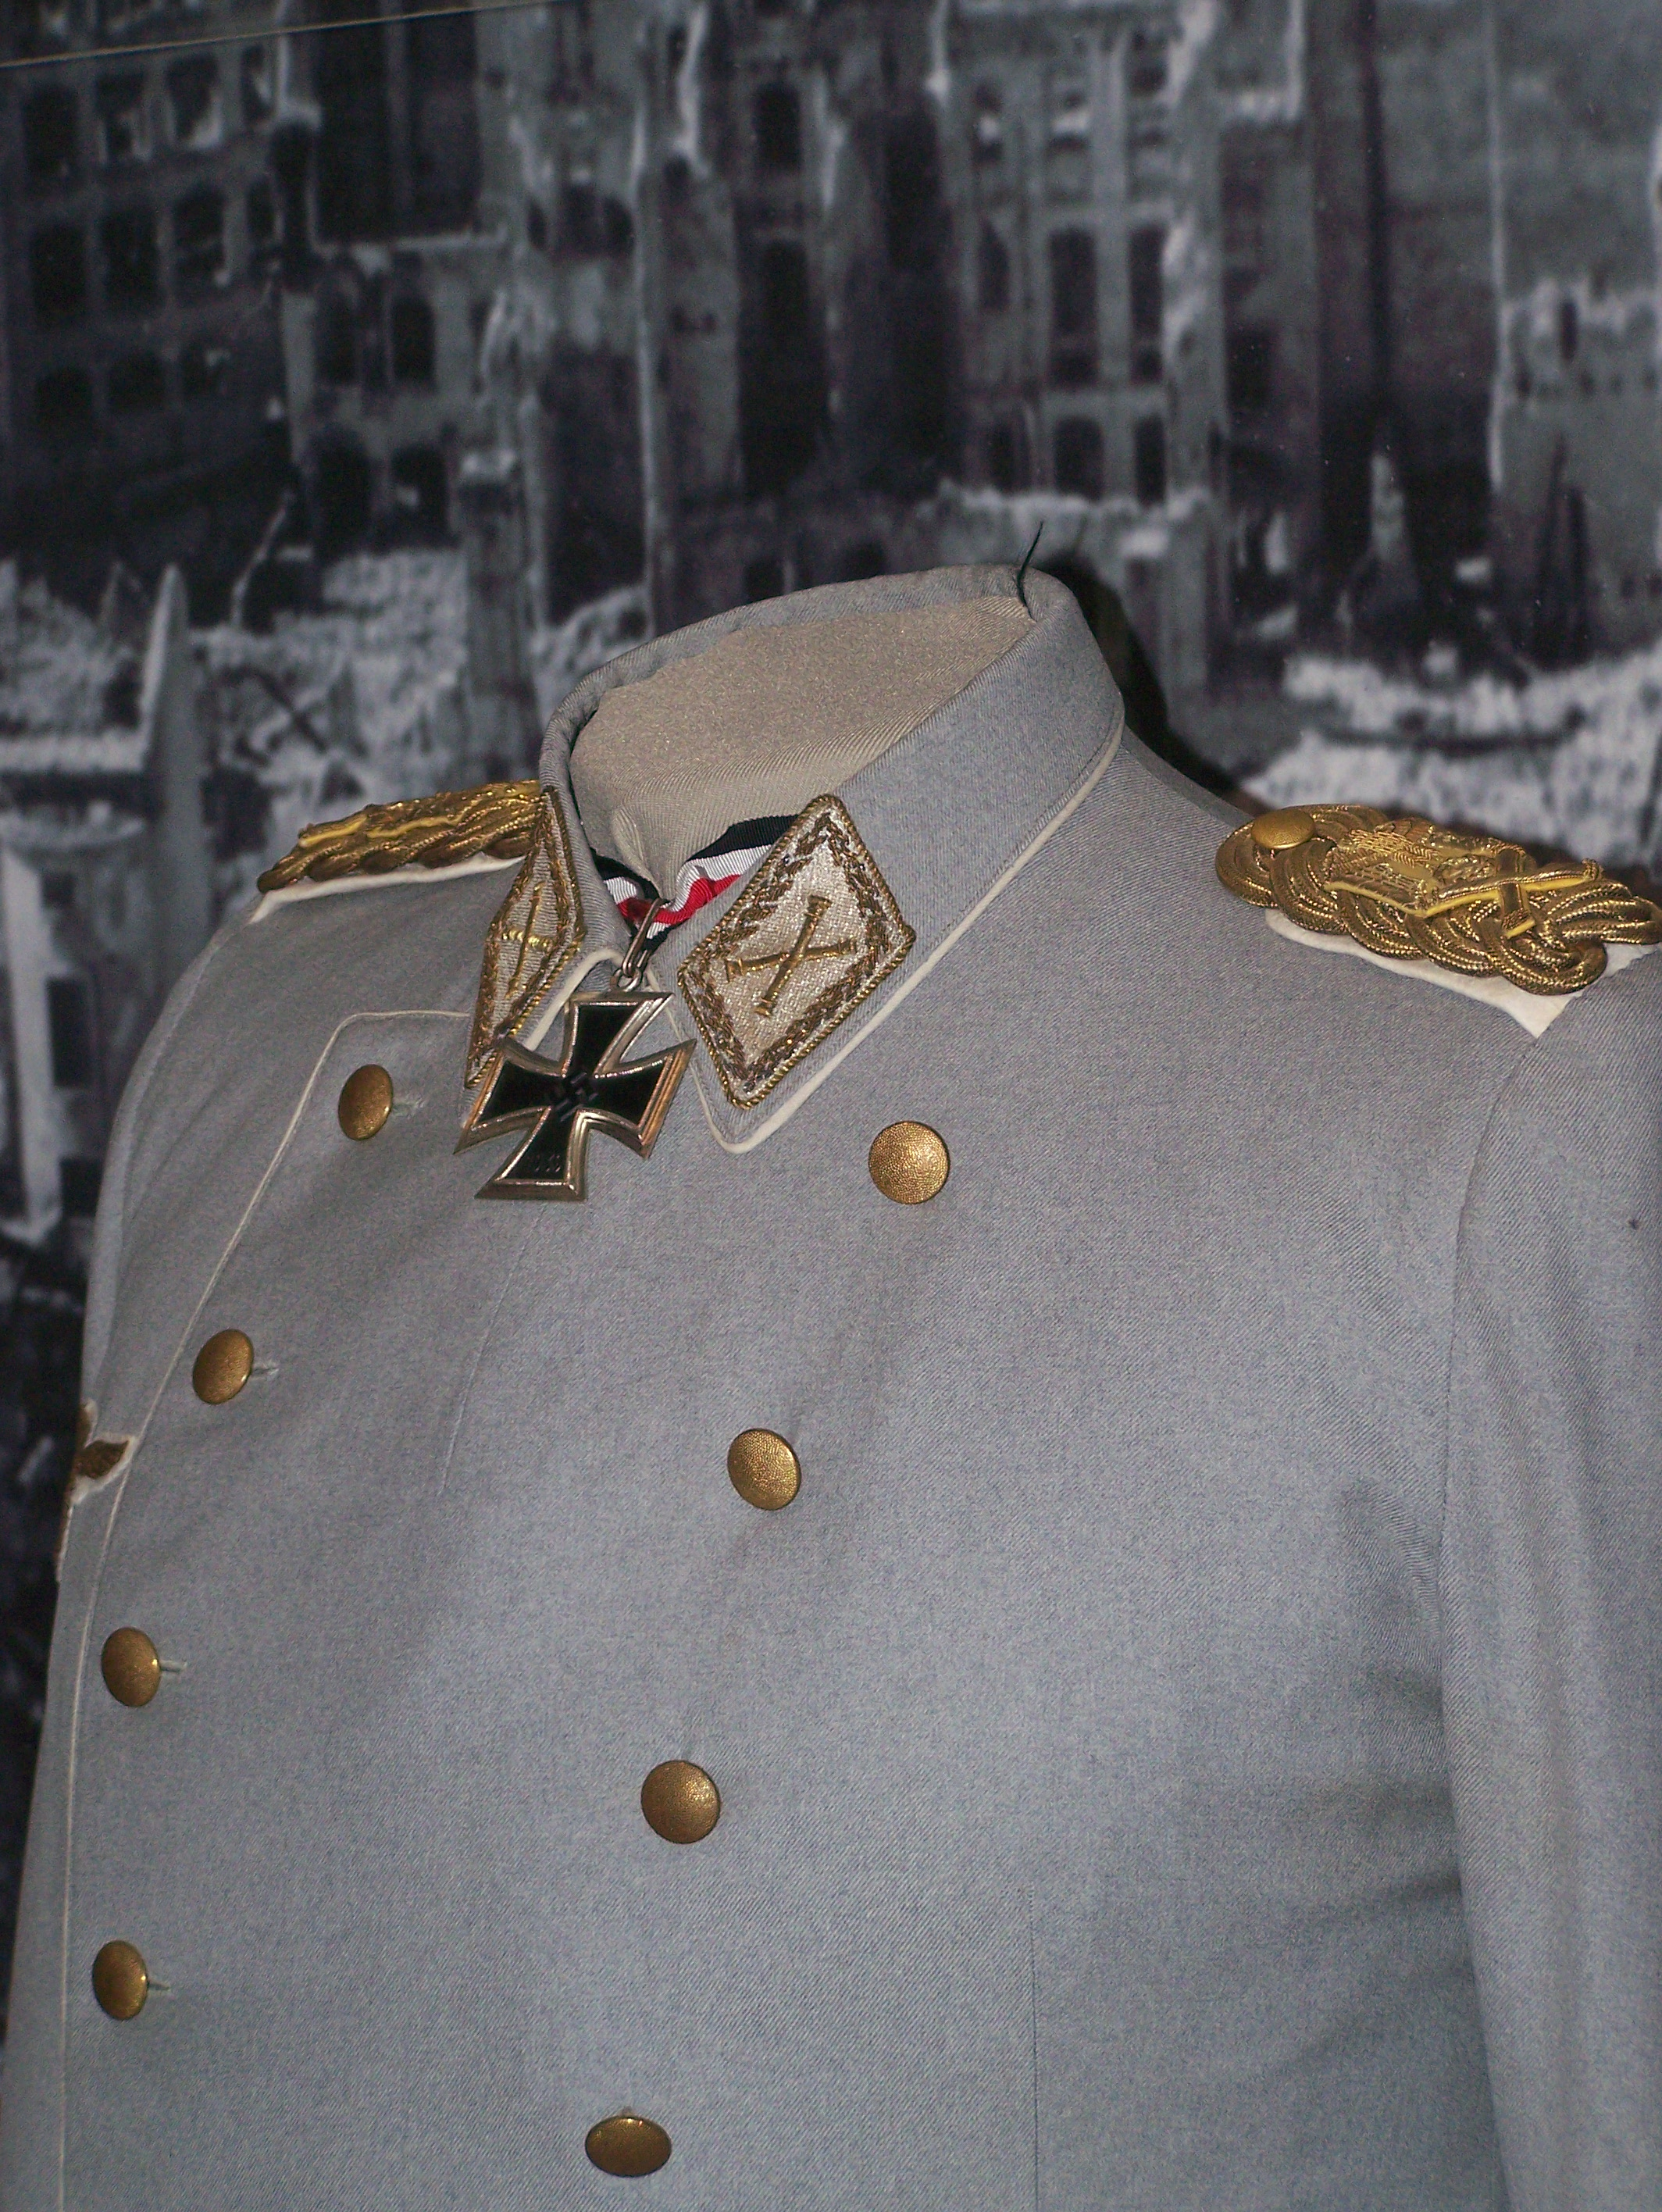 Filegoering Uniform Wikimedia Commons Click Image For Larger Versionname67mustangwiring01jpgviews7176size